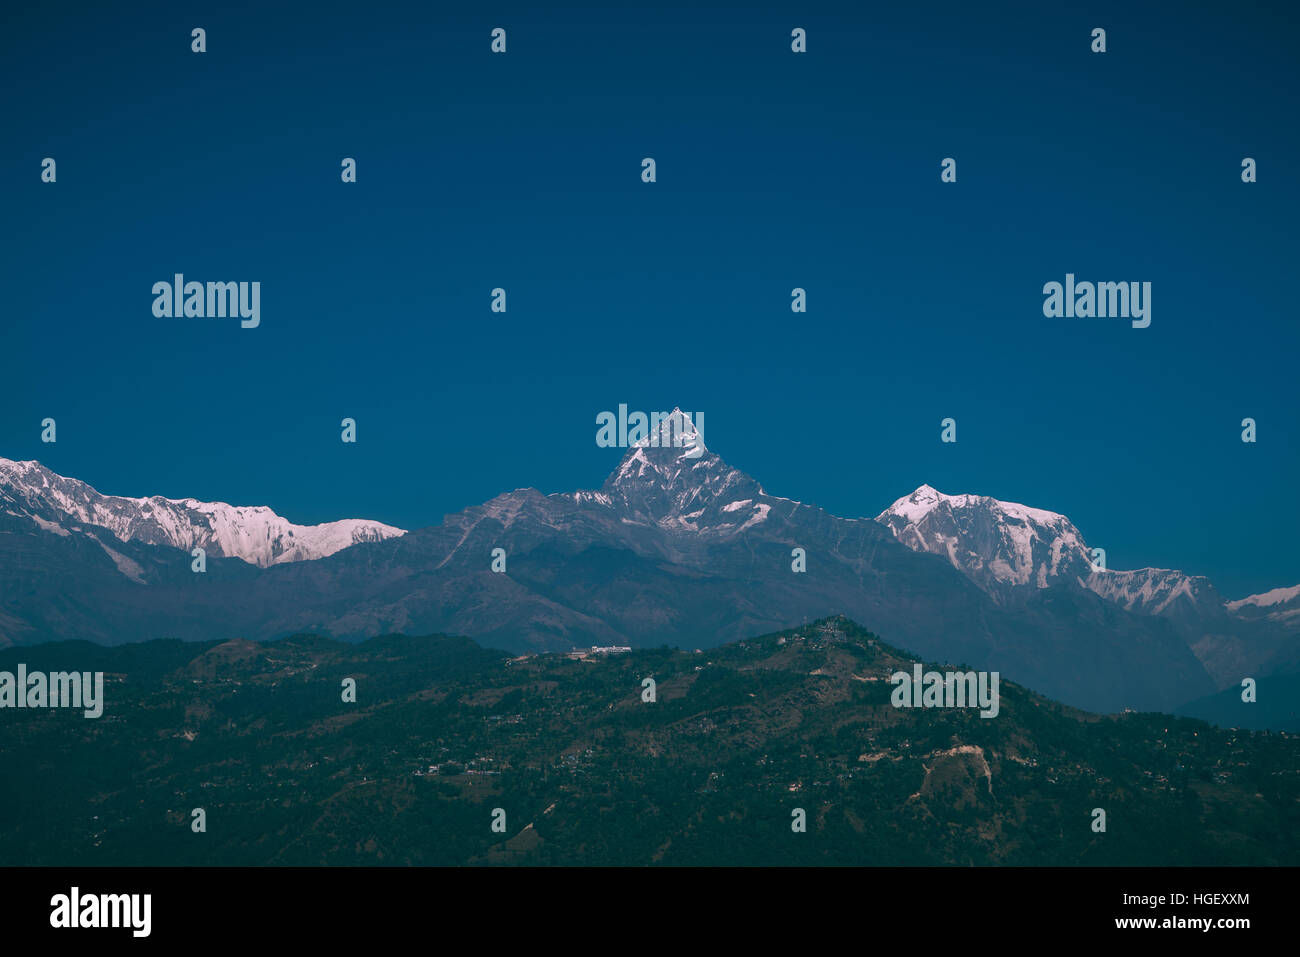 A view of Annapurna peak in Pokhara Nepal - Stock Image